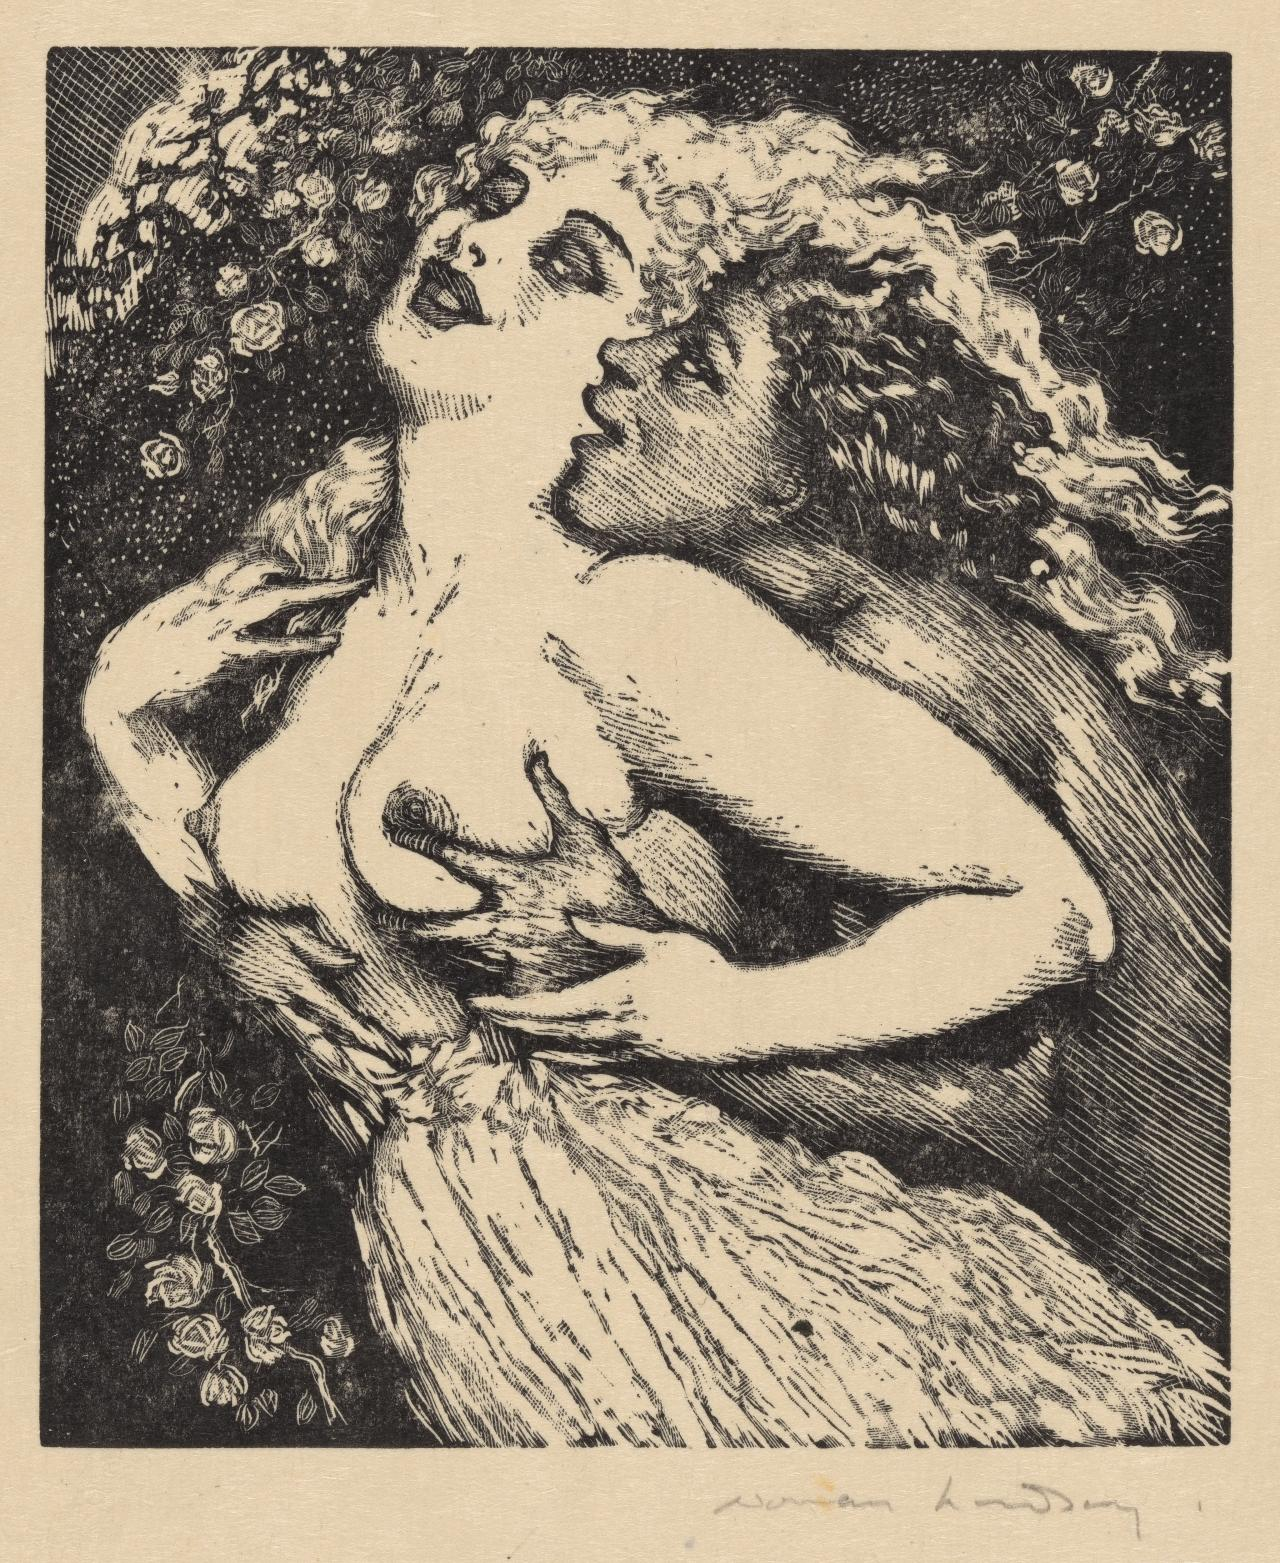 (Satyr embracing bare breasted woman from behind)